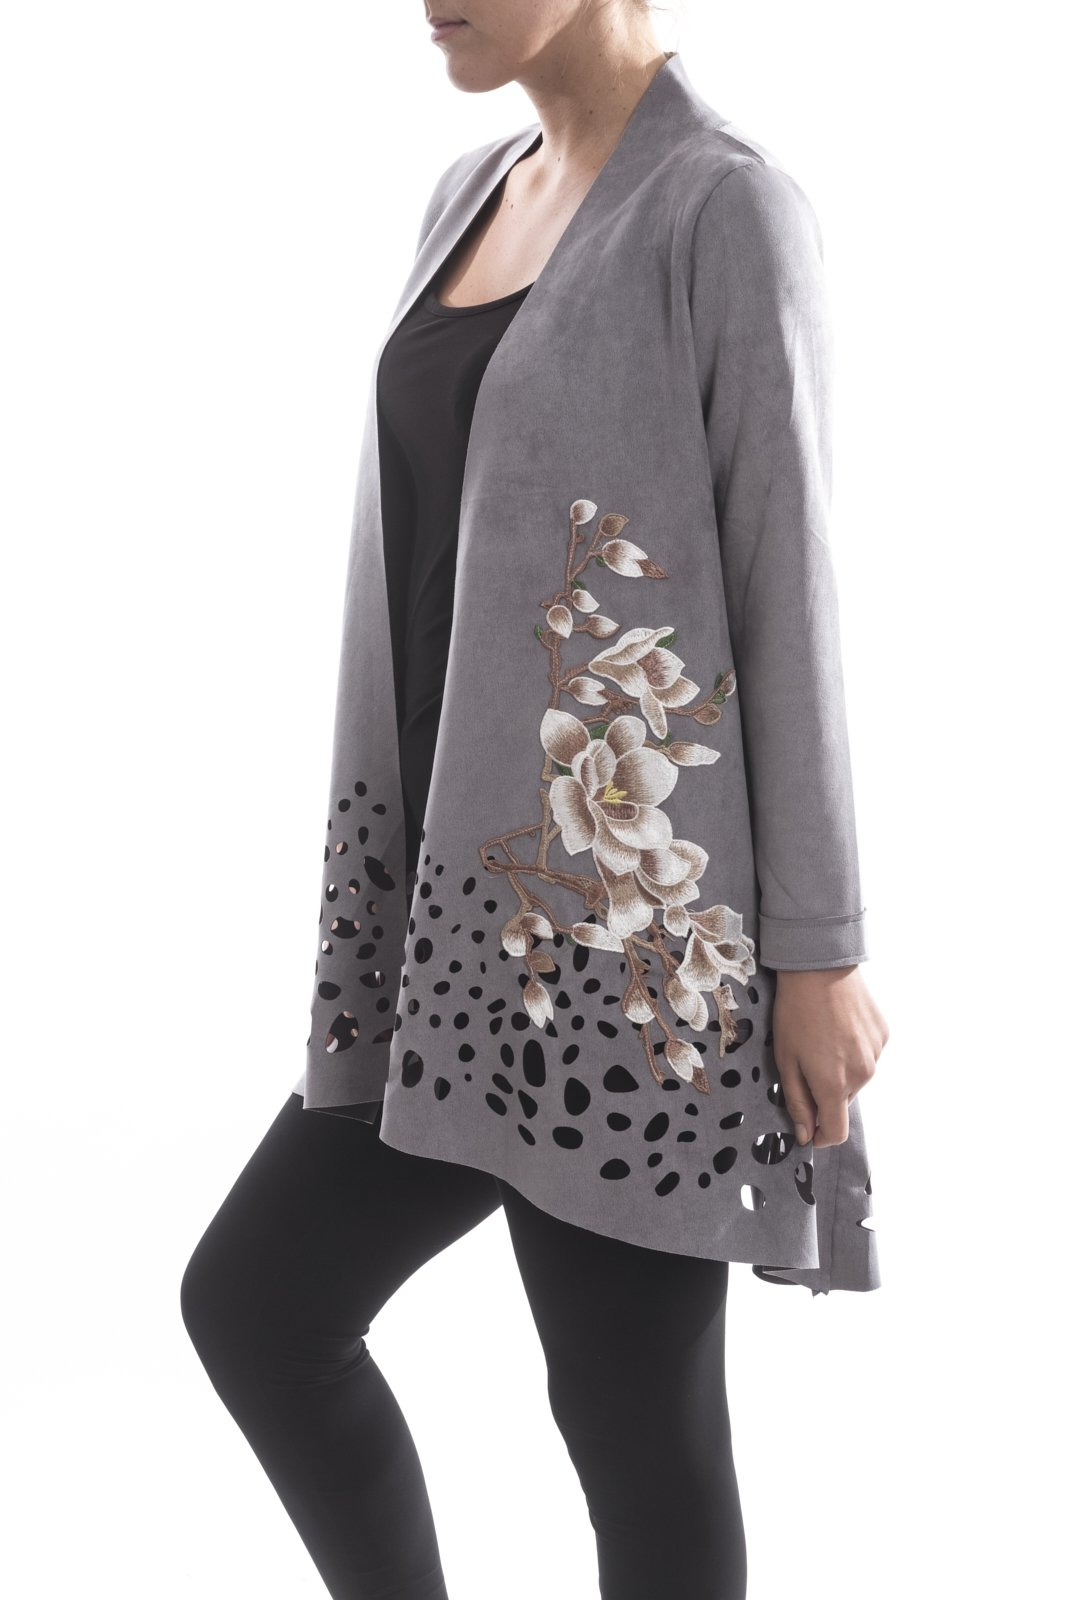 Aris. A Faux Suede Laser Cut Embroidered Grey Jacket Style RB17606 Size Medium by Aris. A